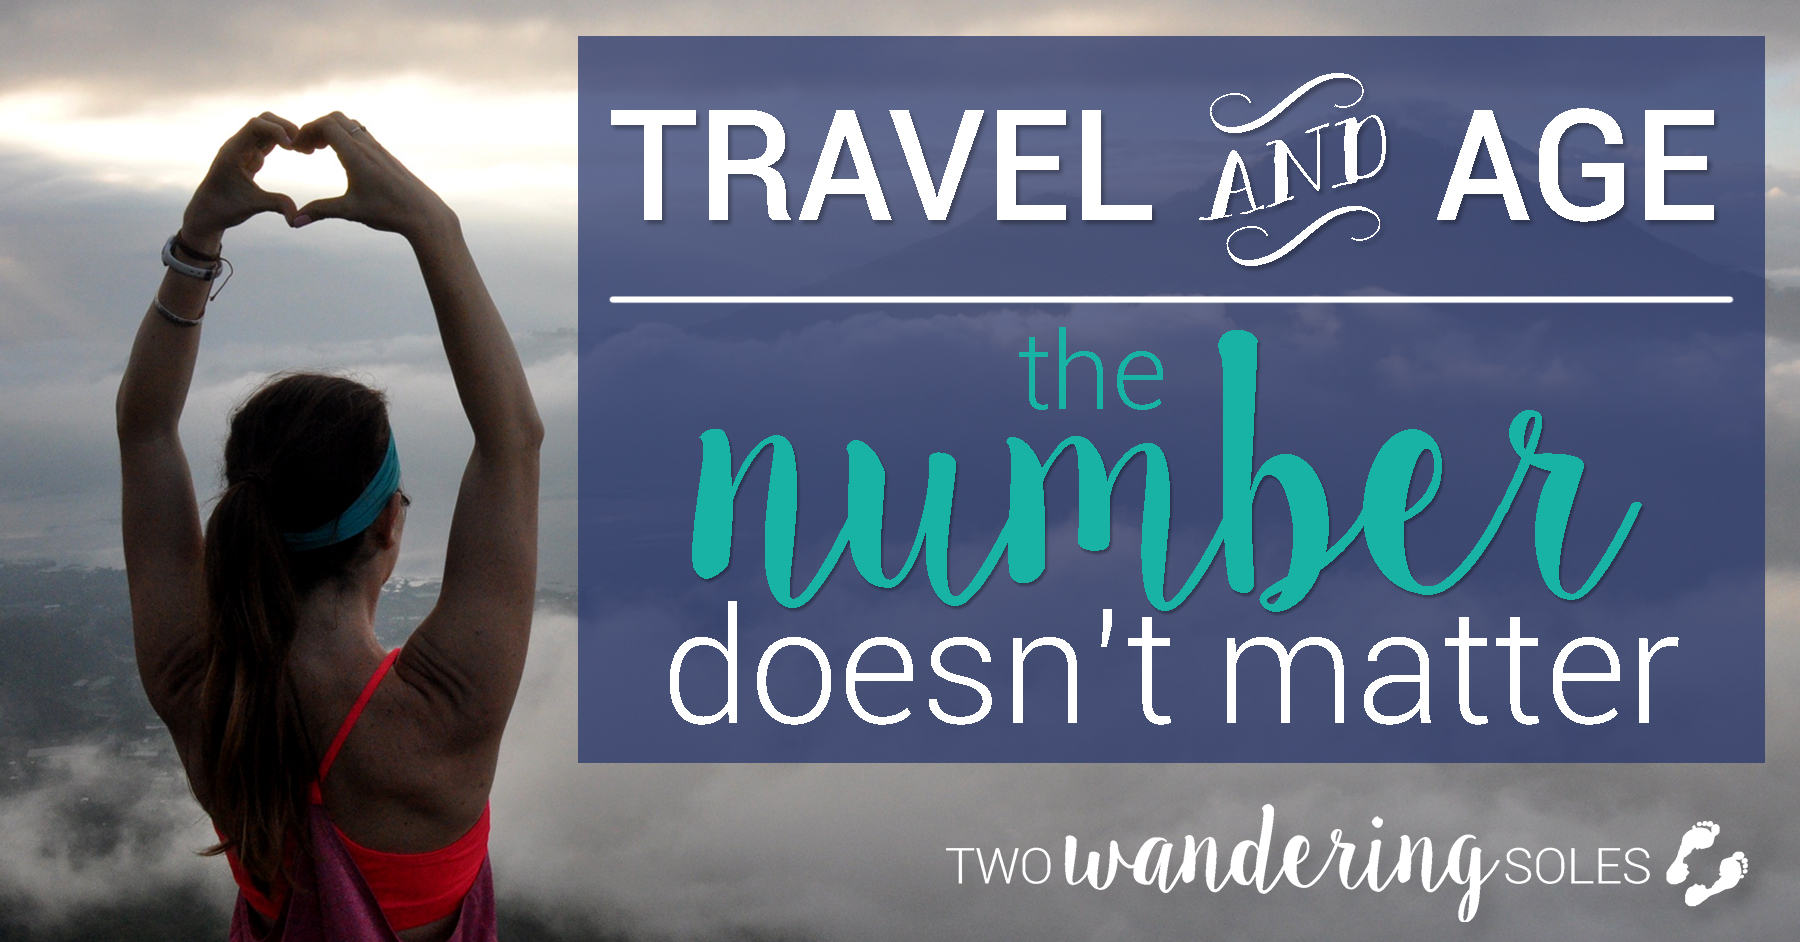 Travel and Age: the number doesn't matter